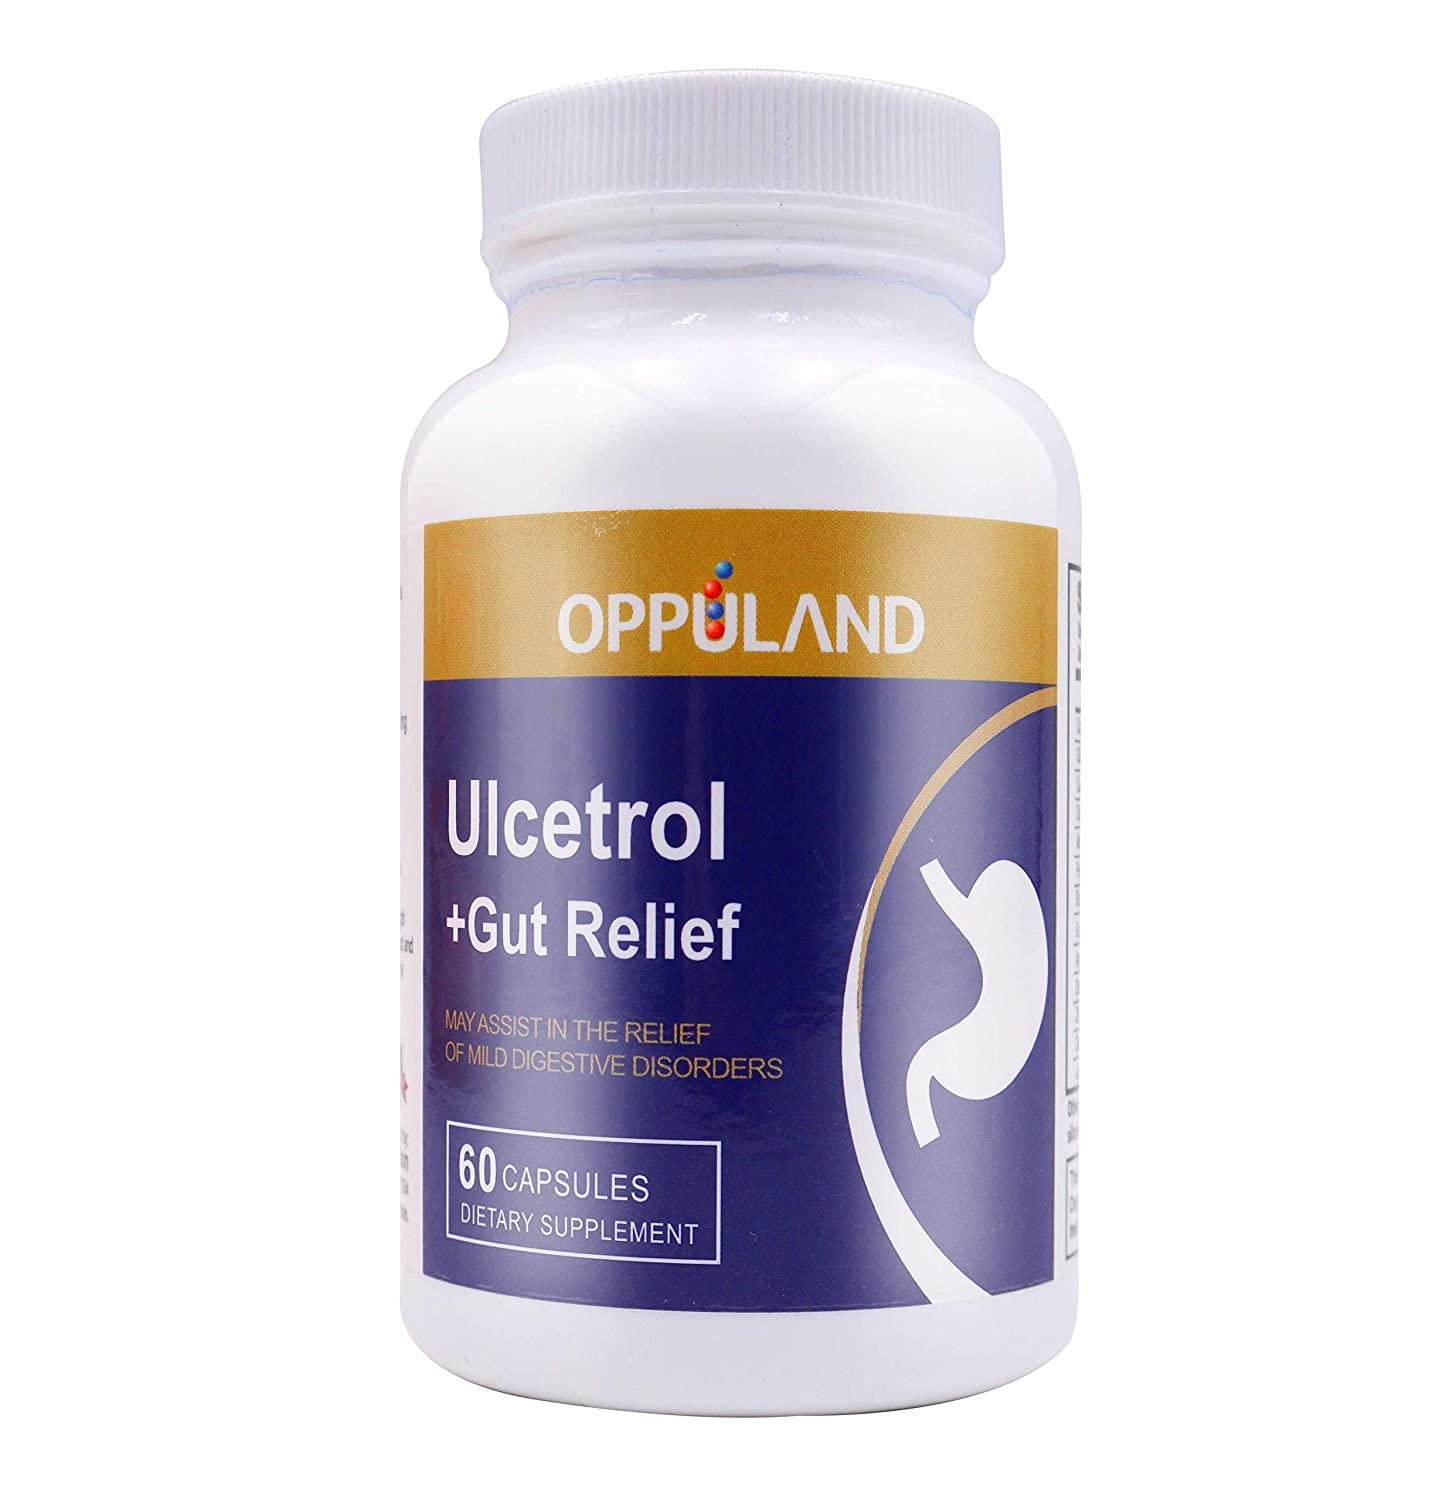 Amazon.com: Oppuland Ulcetrol + Gut Relief, Digestive Health, Supports Health and Comfort of Stomach Lining Cells, 60 Capsules: Health & Personal Care